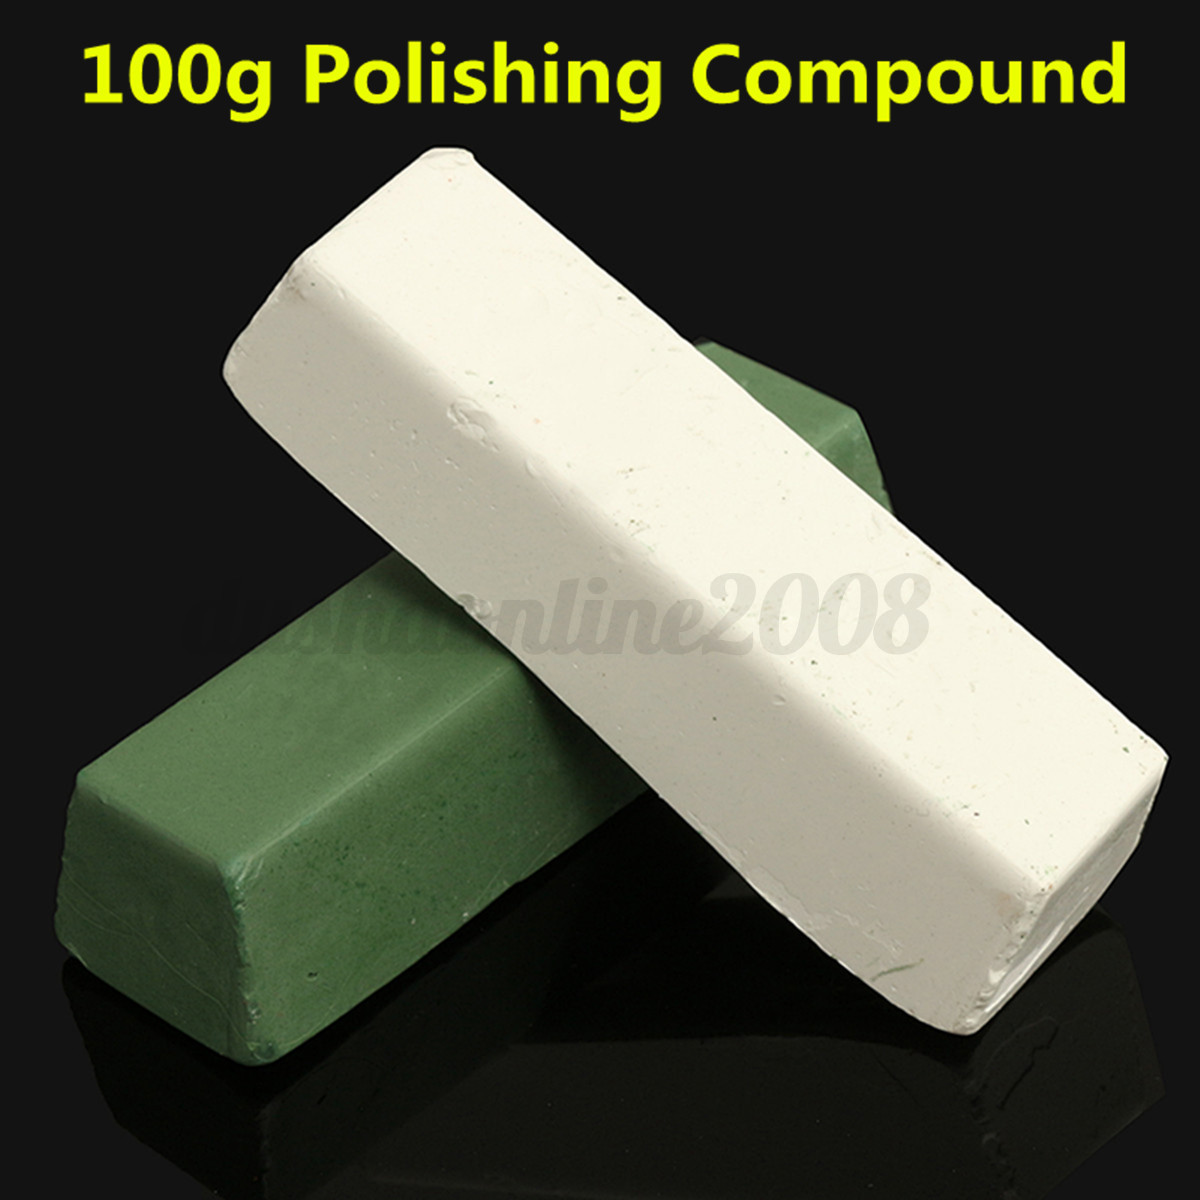 p te polir blanc vert 100g polissage de finition plastique cuivre acier m taux ebay. Black Bedroom Furniture Sets. Home Design Ideas